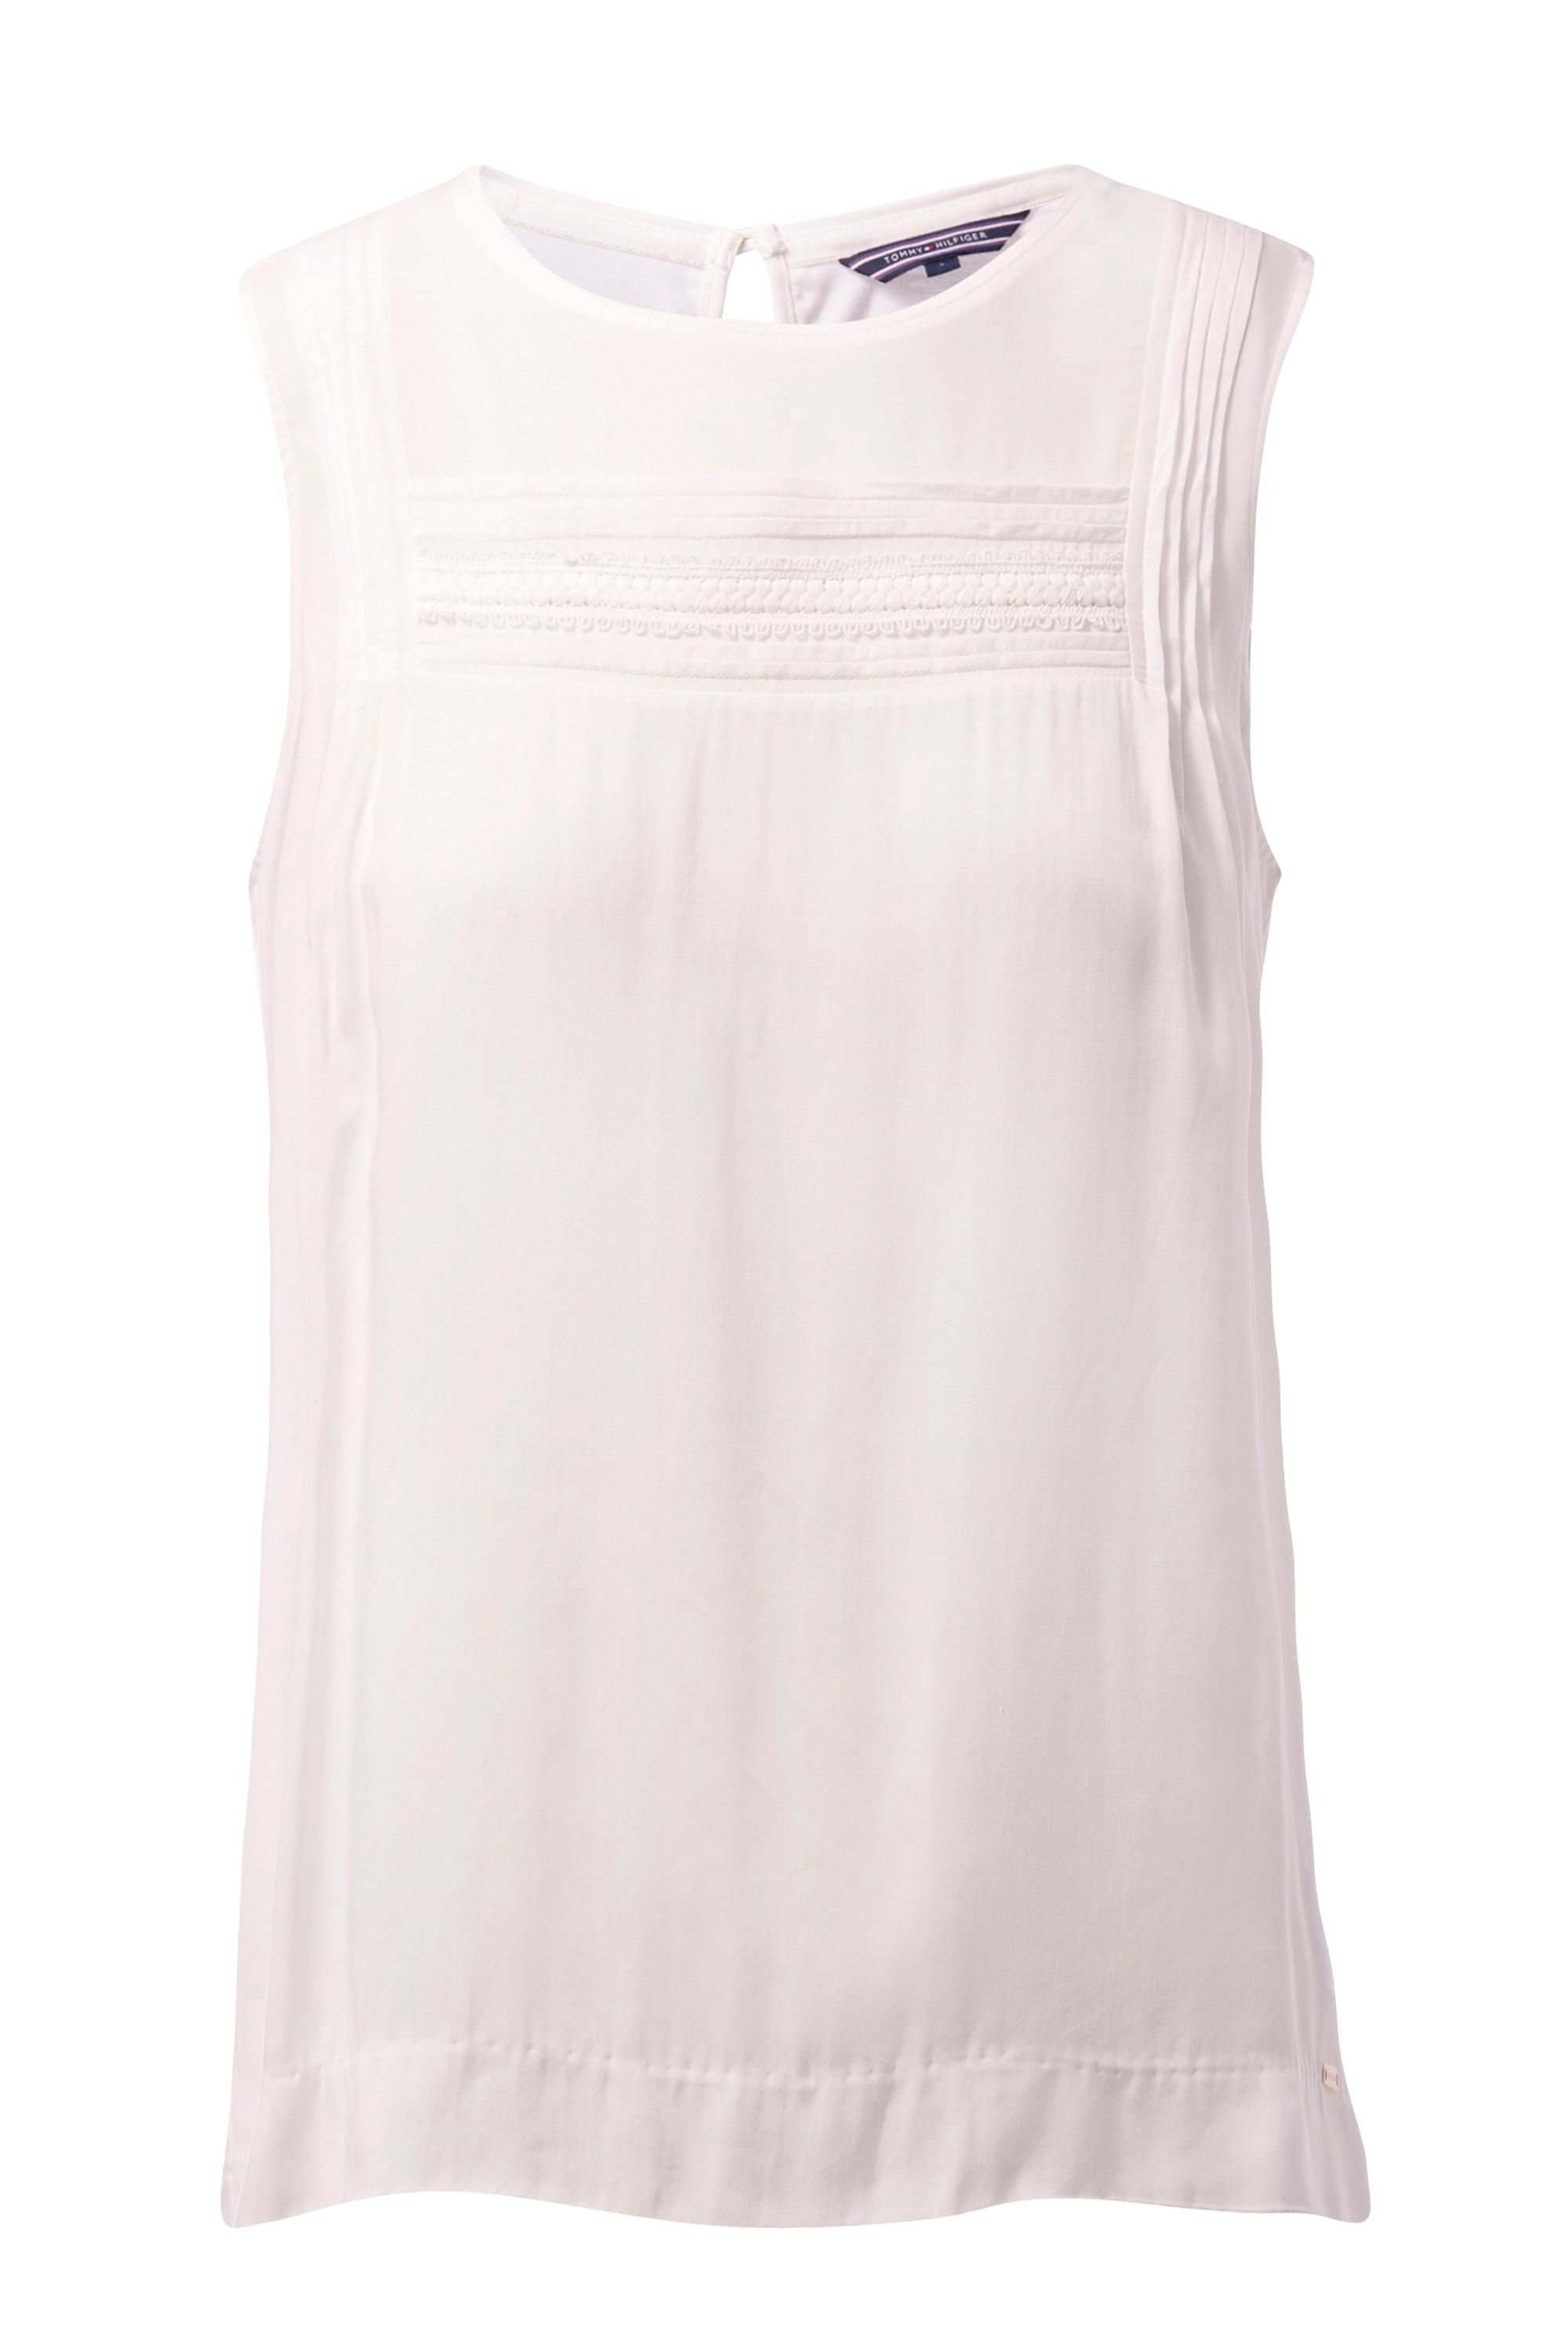 Tommy Hilfiger Cindy Top, White